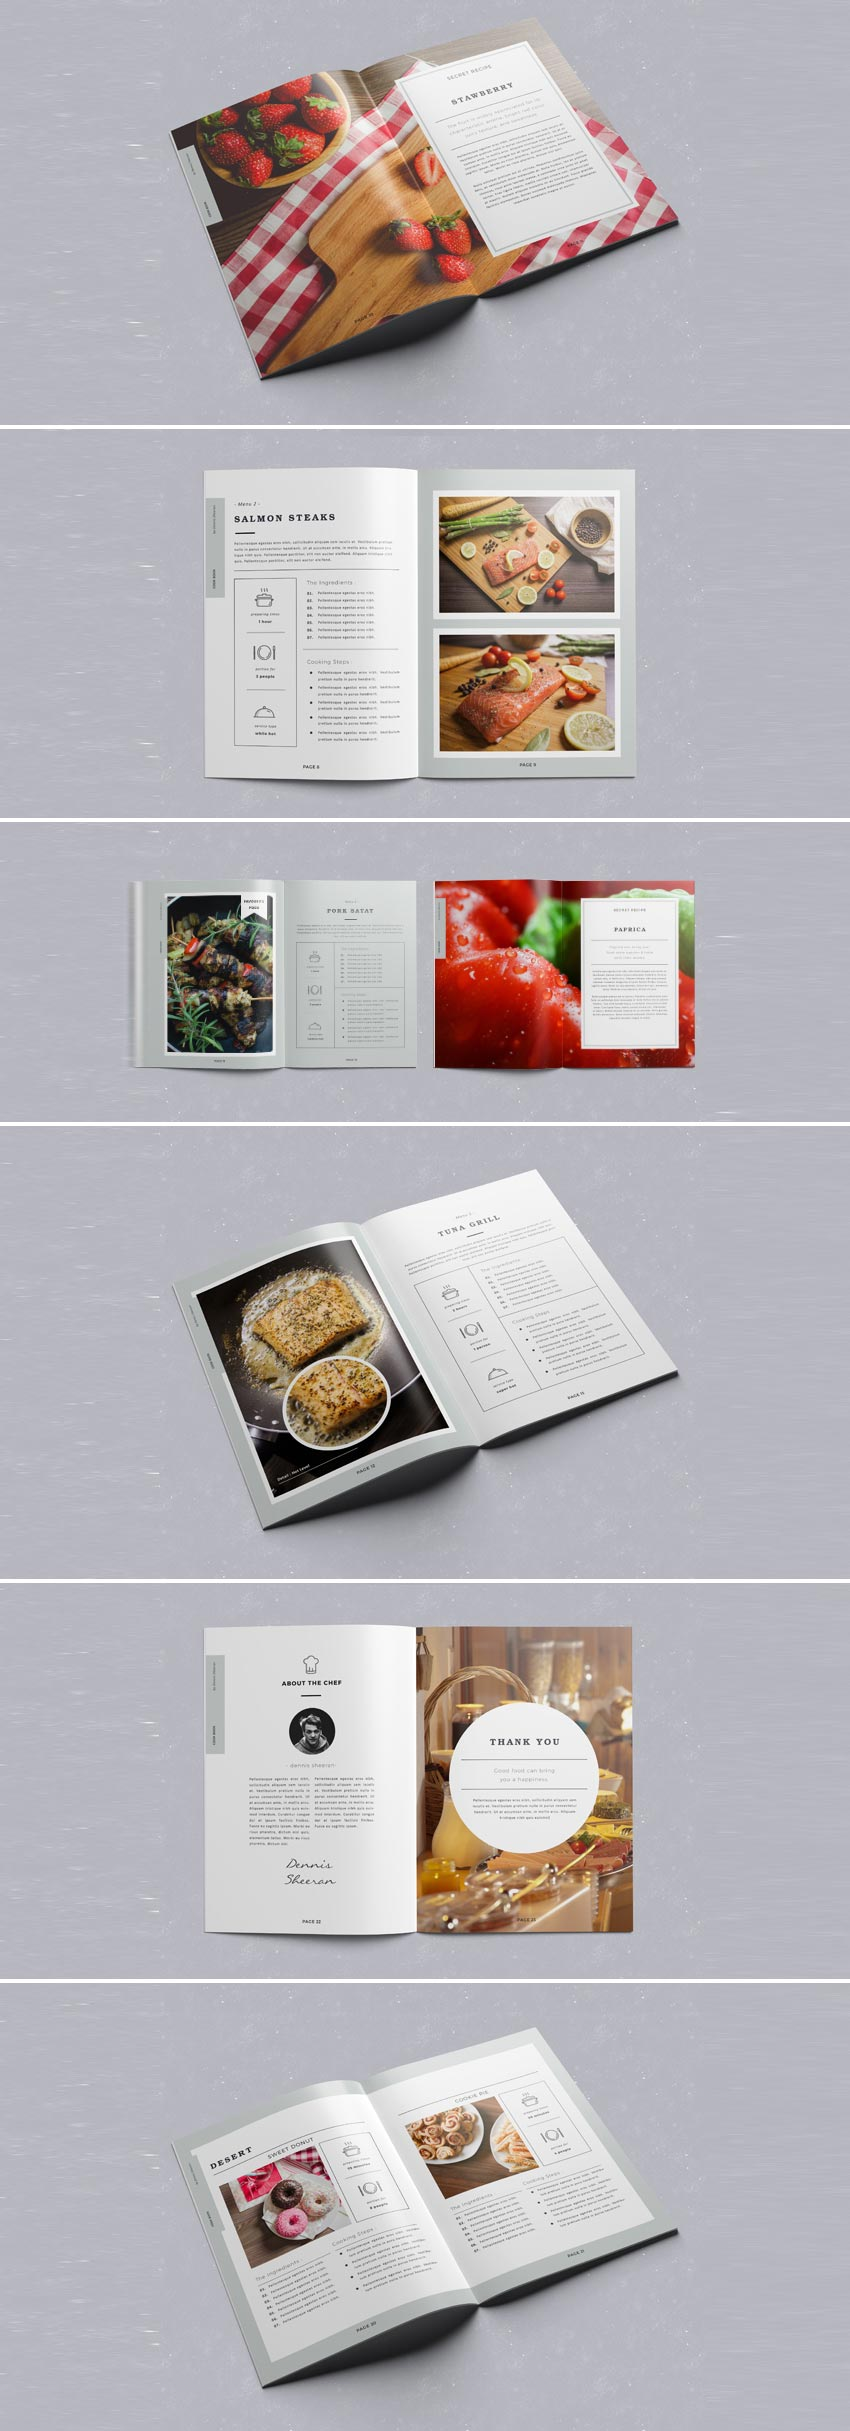 25 indesign templates every designer should own for Indesign templates for books